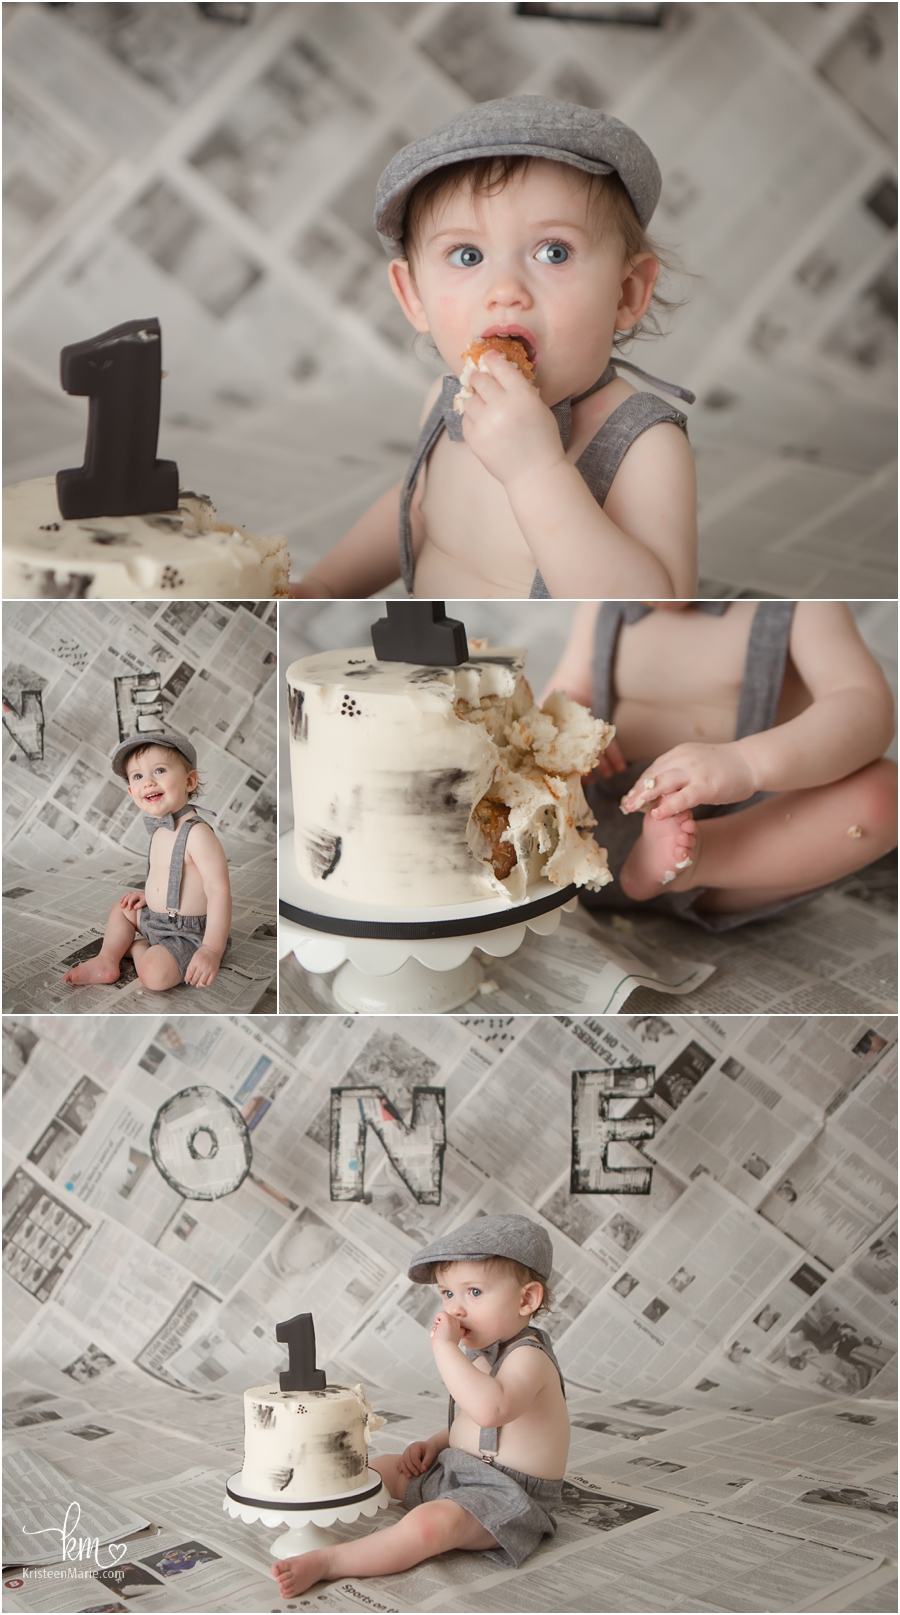 Birthday boy celebrating his 1st birthday with cake smash and newspaper